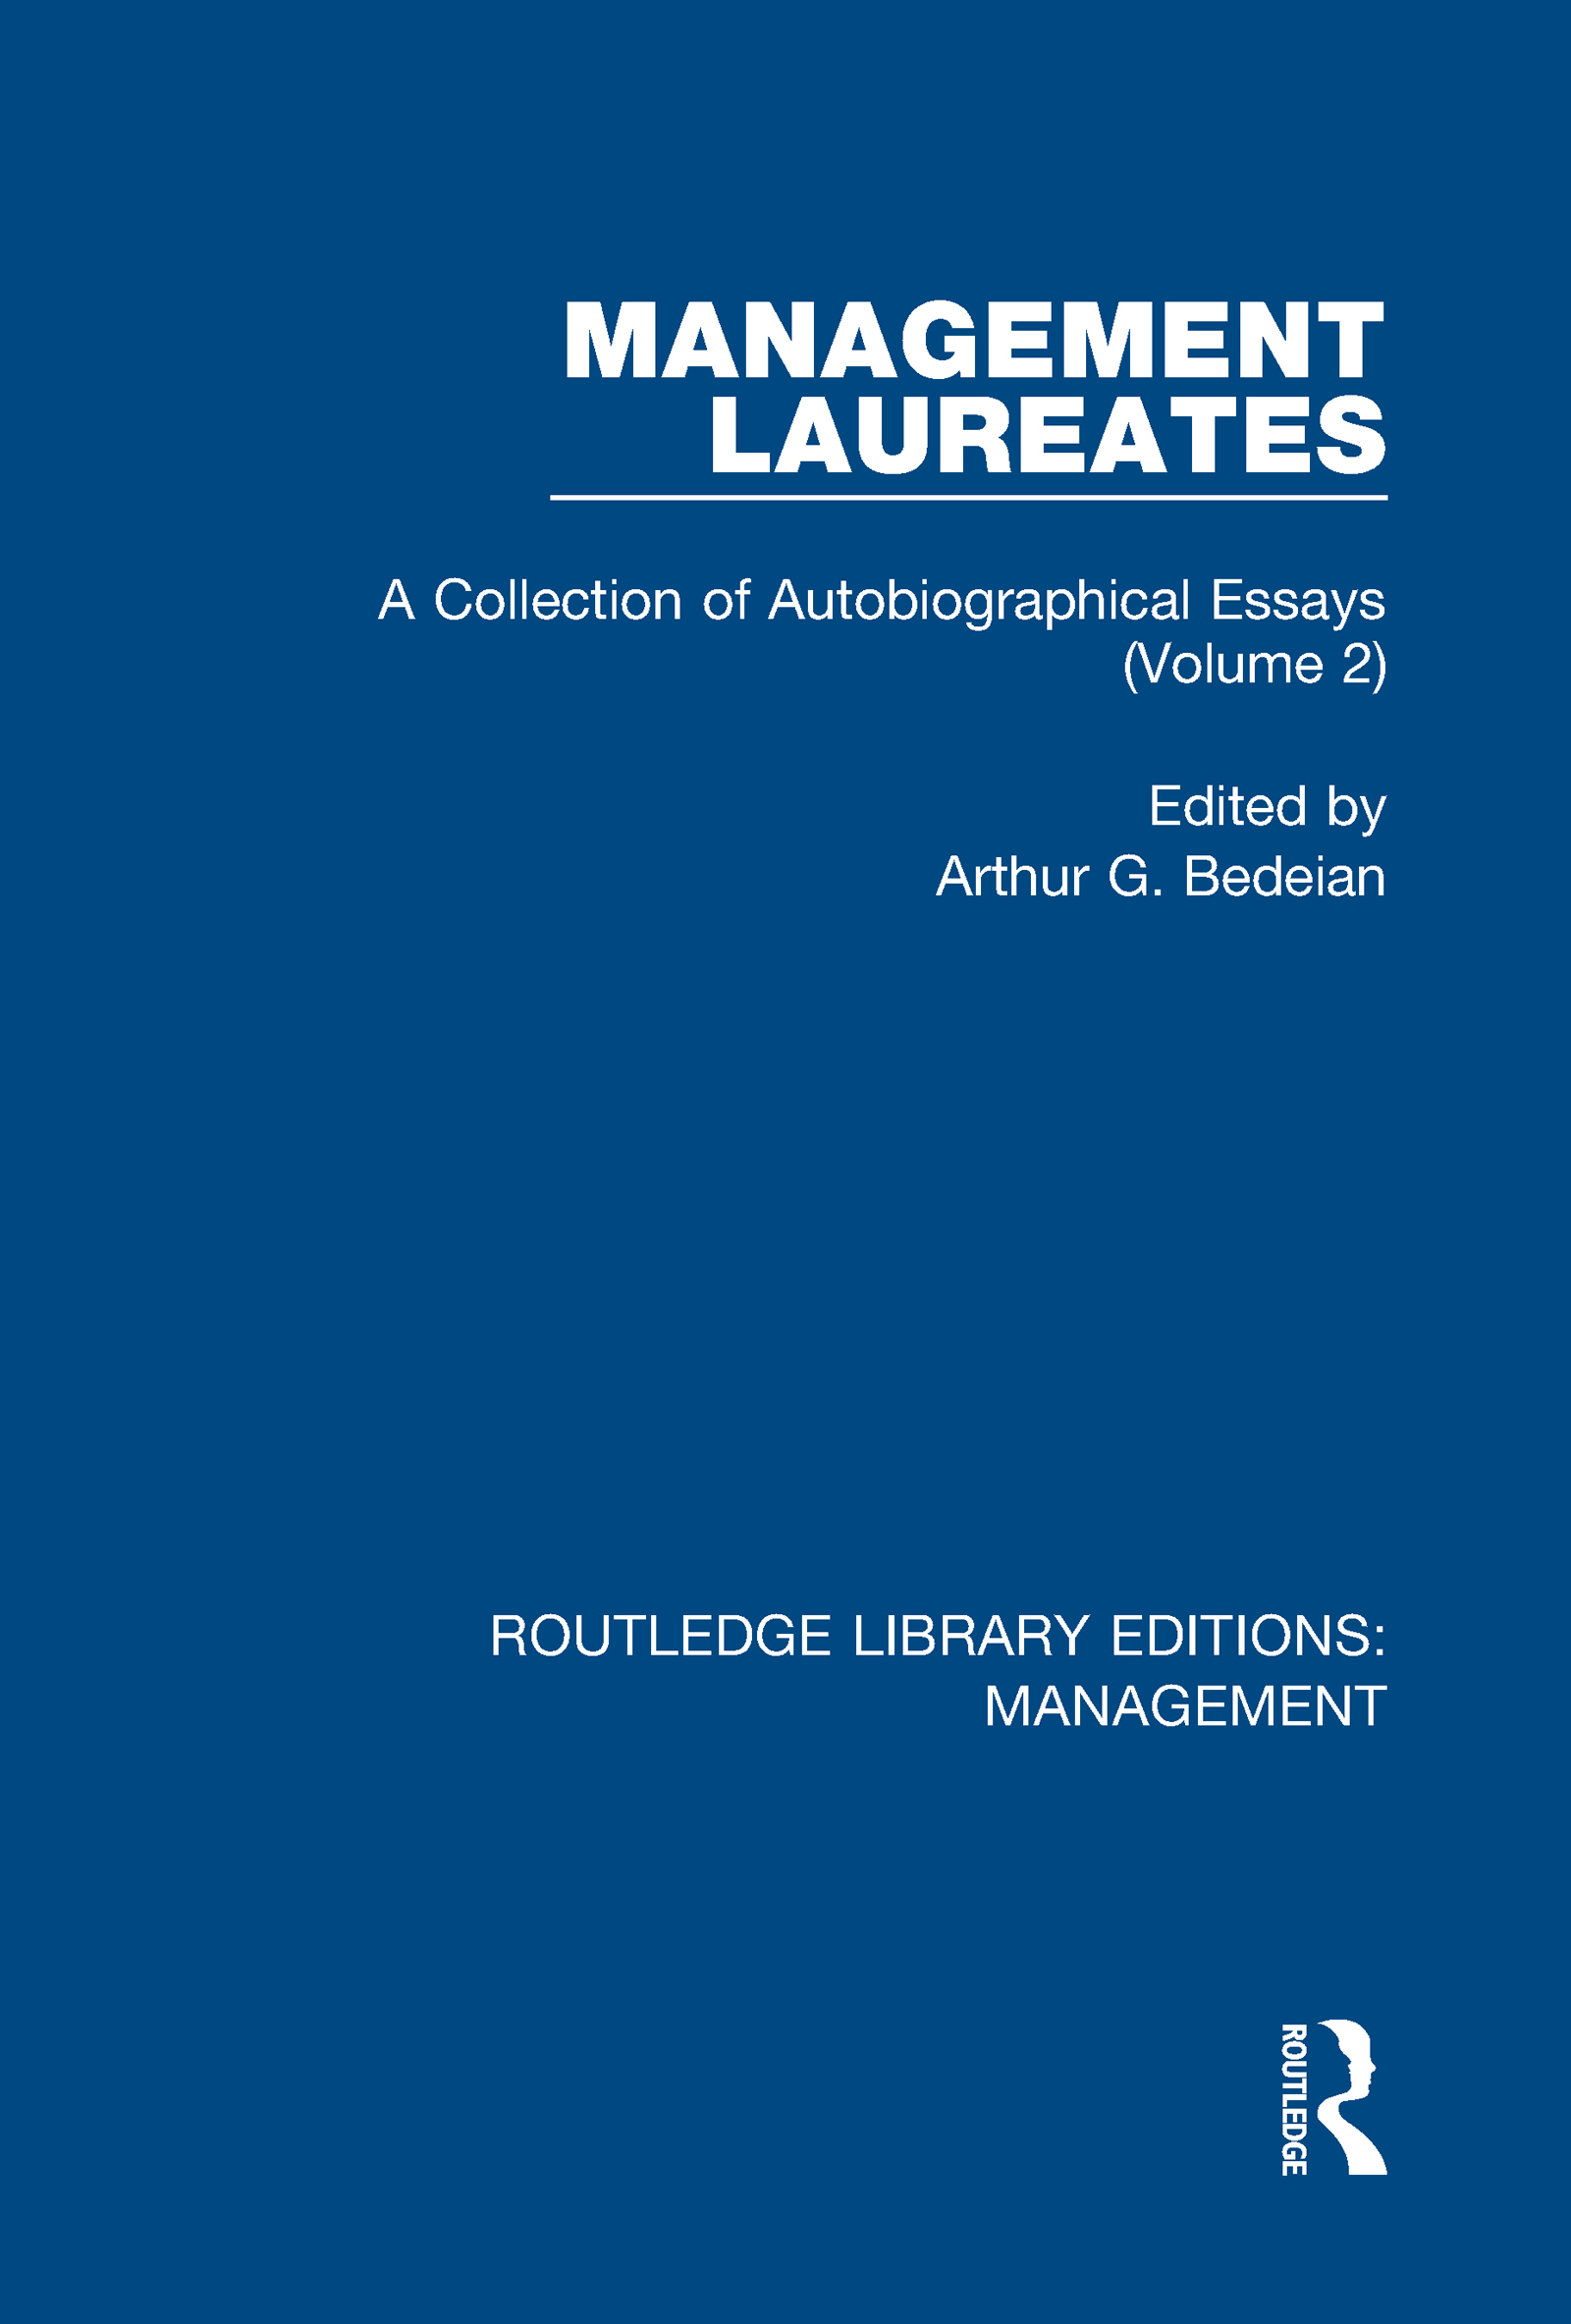 Management Laureates: A Collection of Autobiographical Essays (Volume 2) book cover